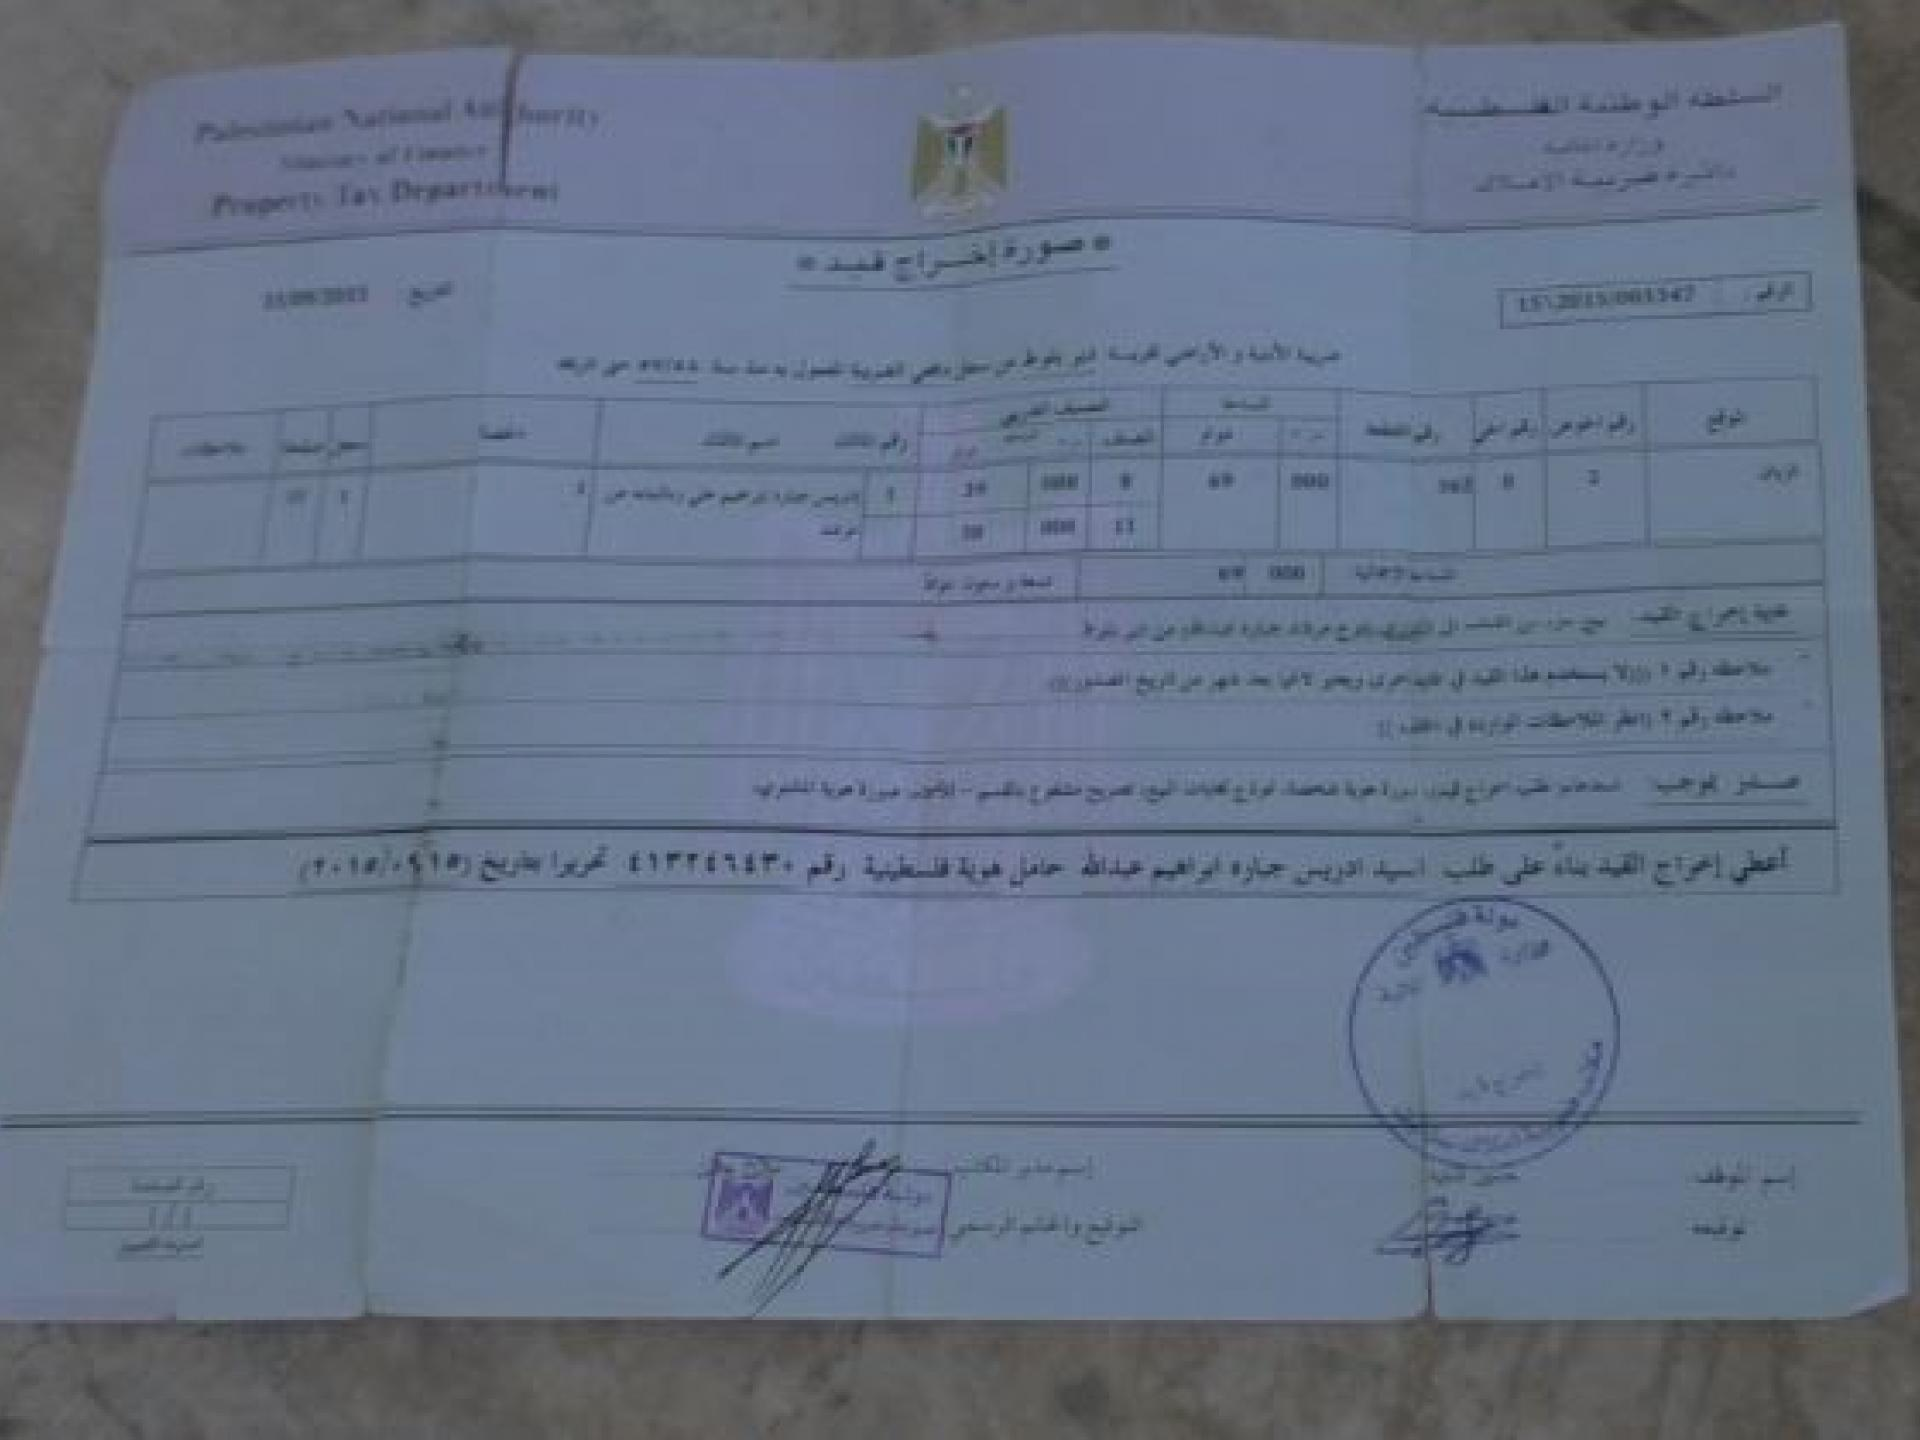 The legal document on land distribution